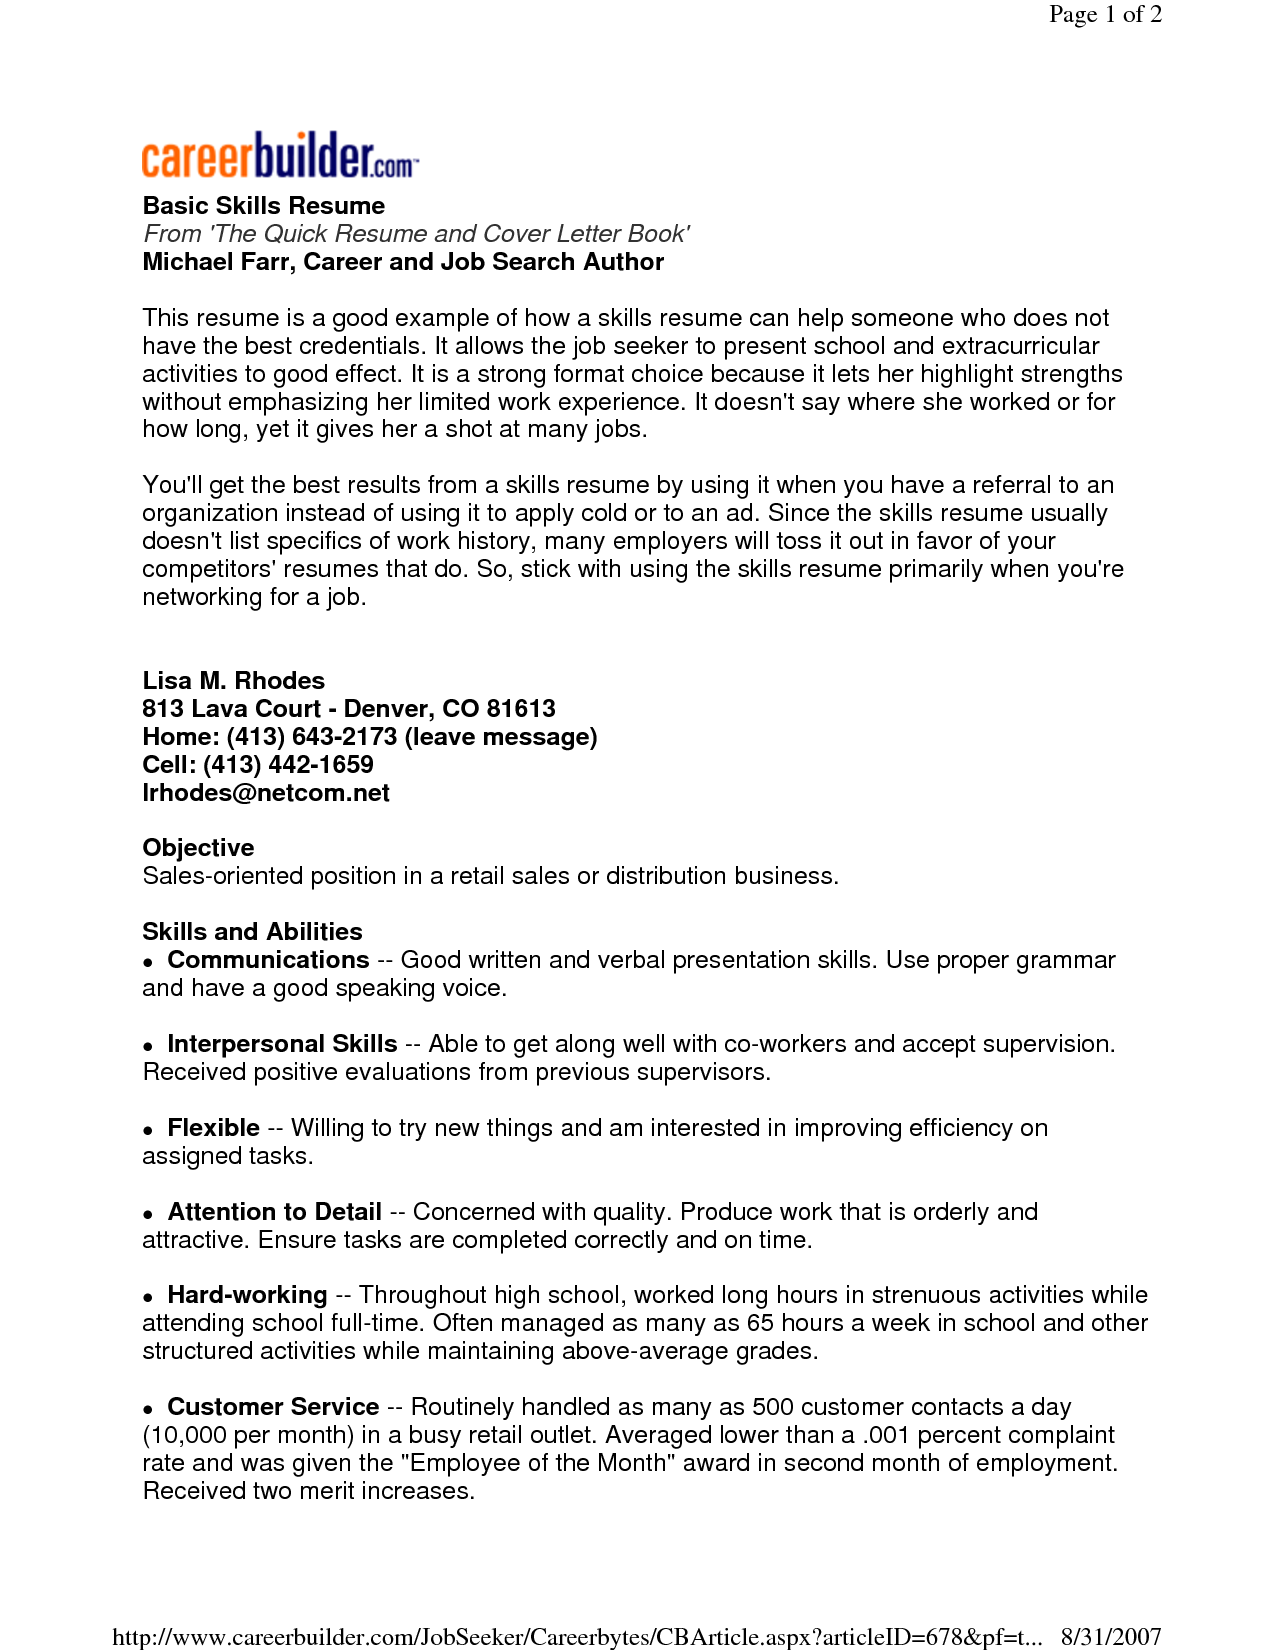 Resume Objective For Sales Basic Resume Examples Skills  Httpwww.resumecareerbasic .